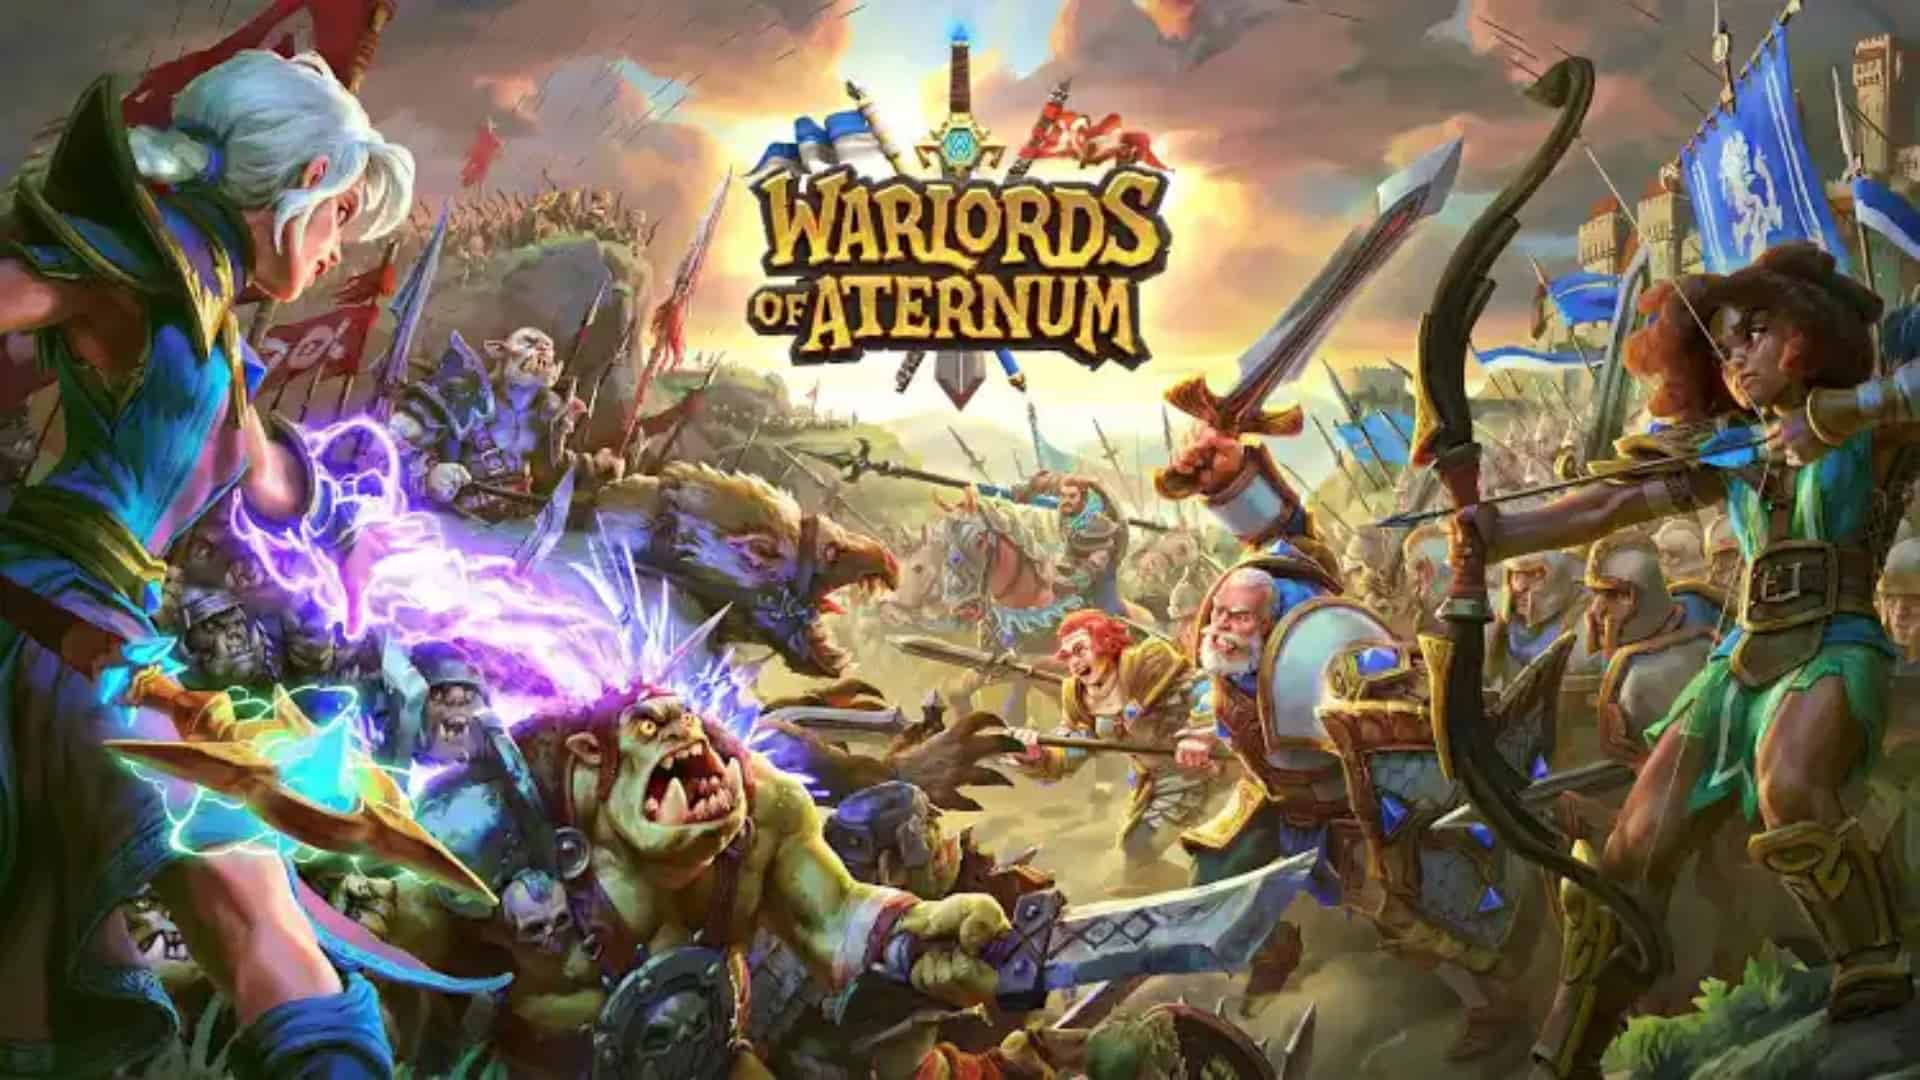 Download Warlords of Aternum on PC